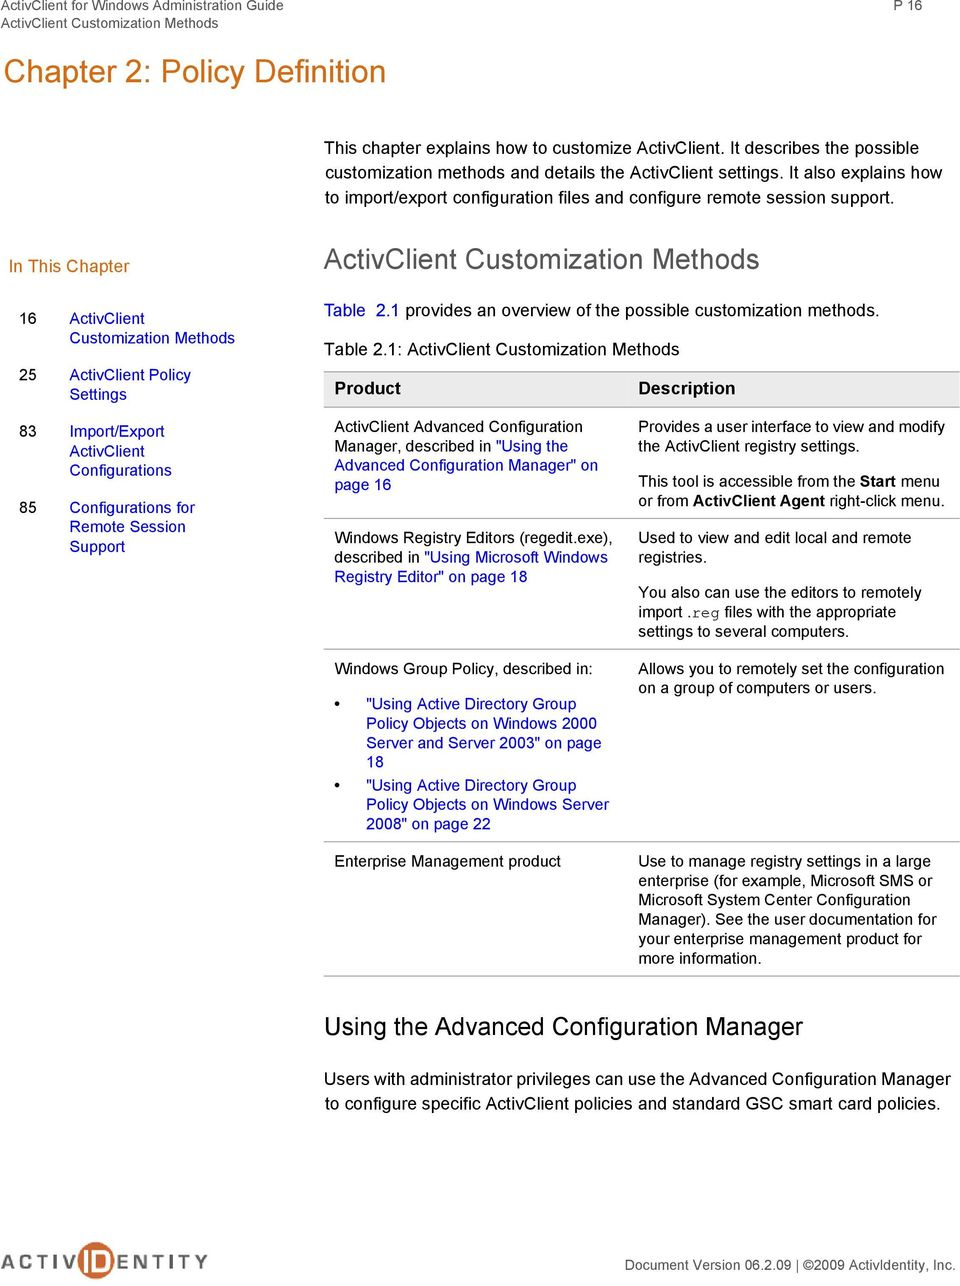 Administration guide activclient for windows pdf free download.